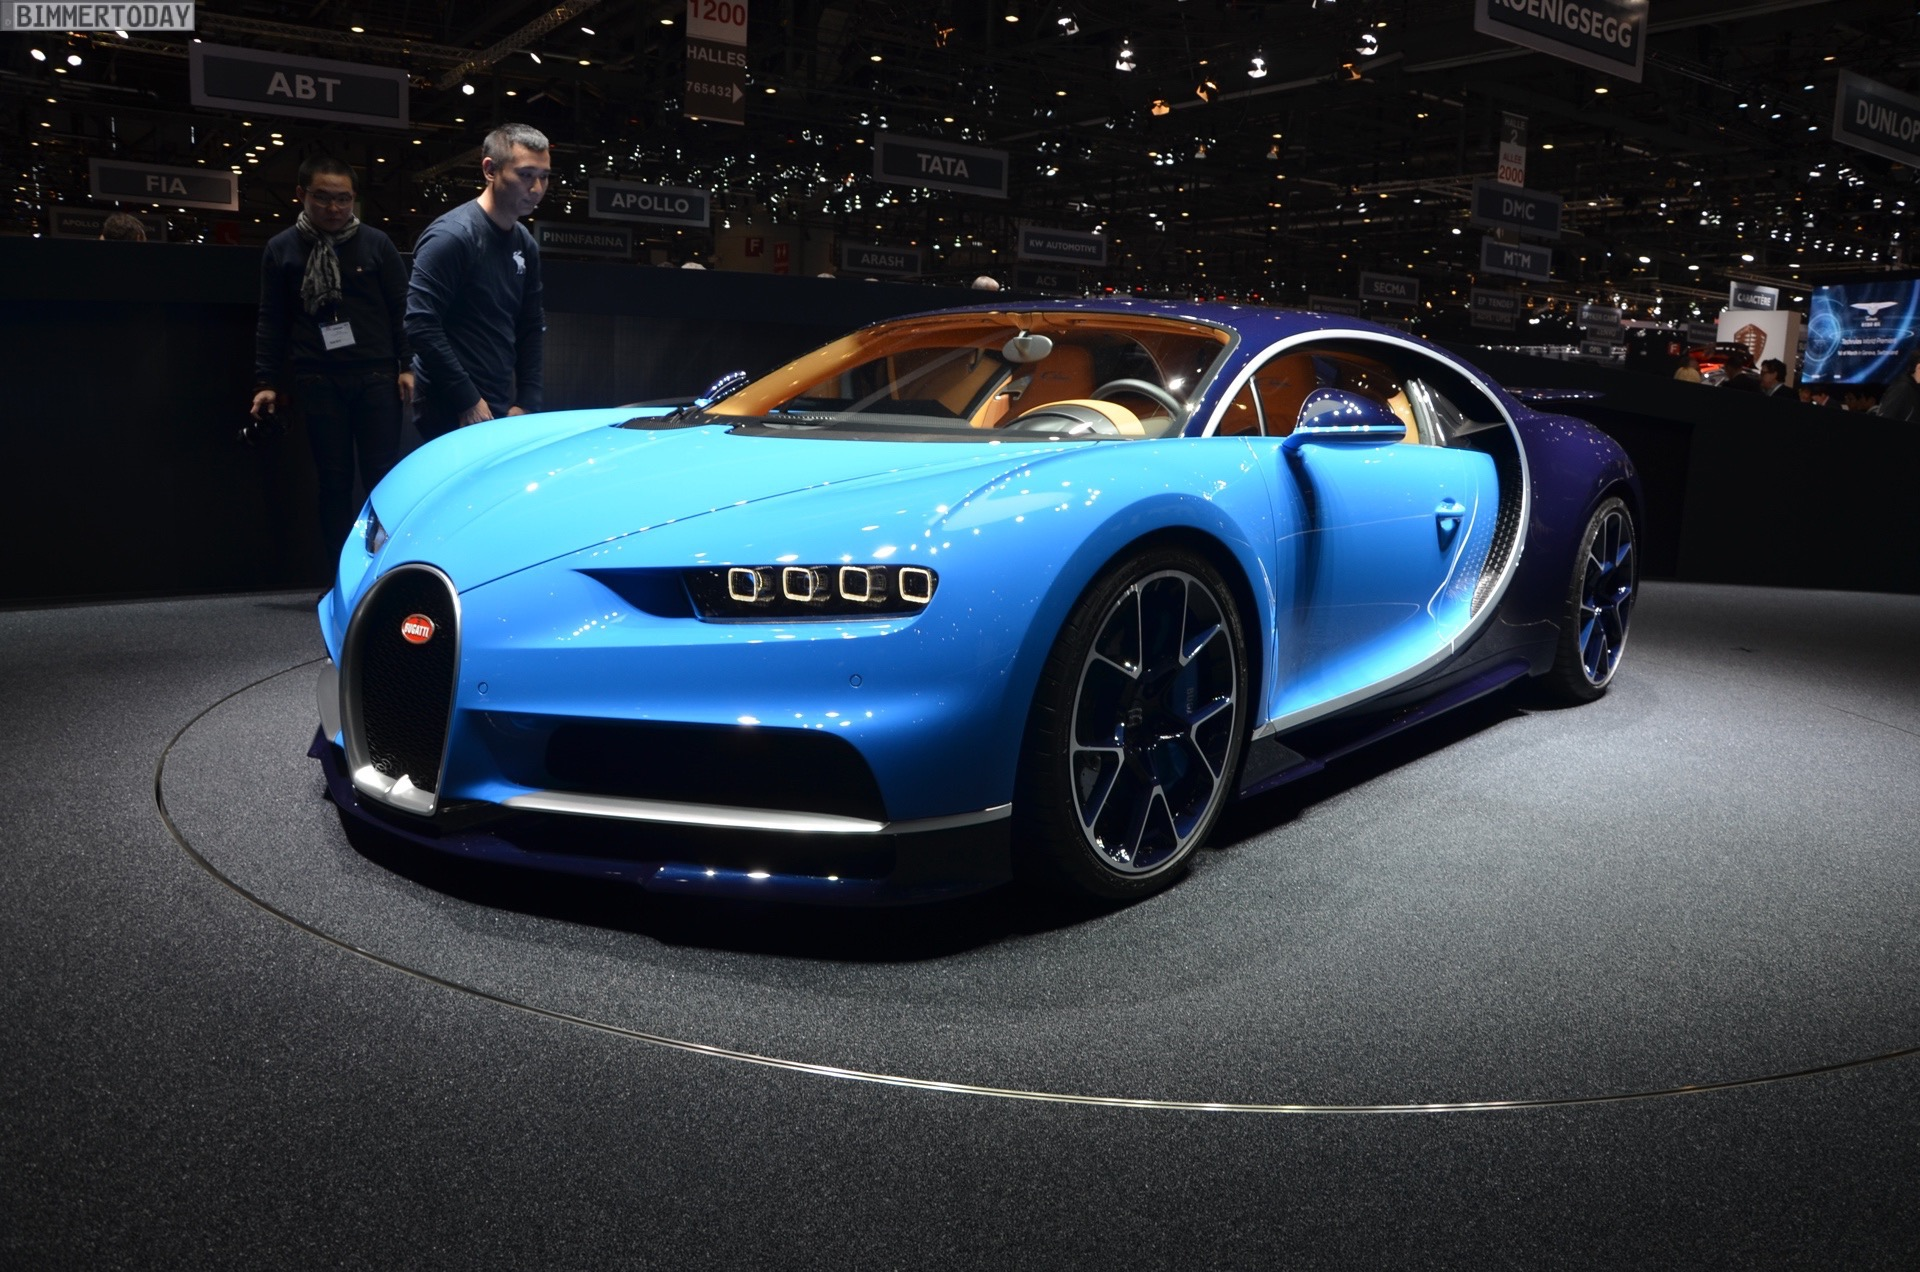 Fastest Car In The World Wallpaper 2015 Bugatti Chiron With 1500 Horsepower